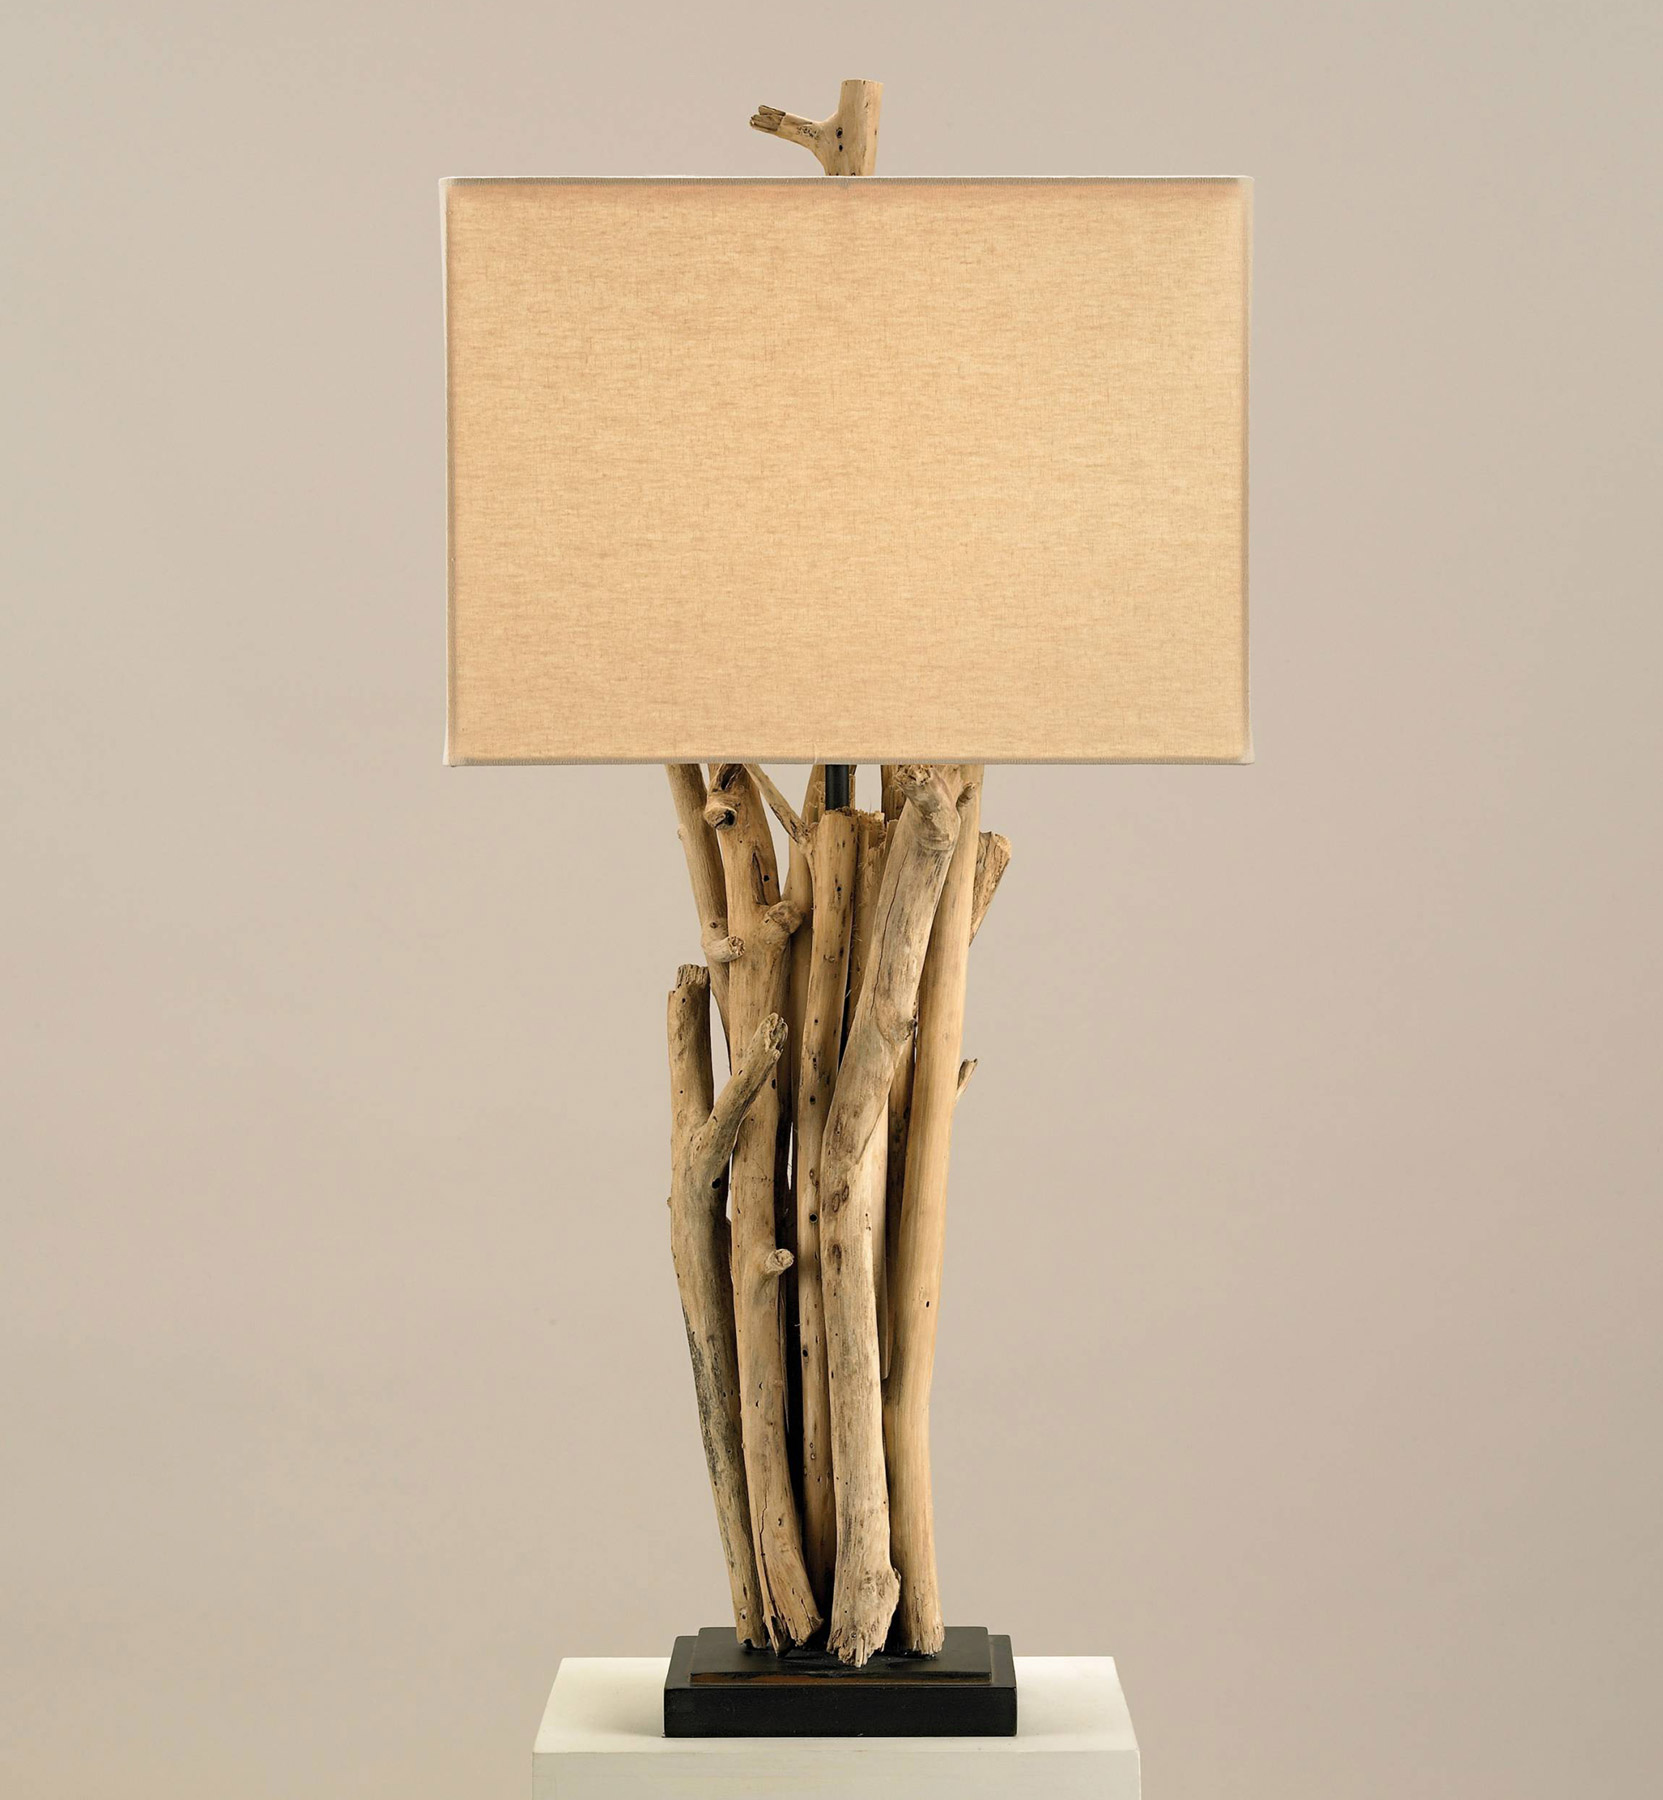 The uses of driftwood table lamps warisan lighting introduction geotapseo Images